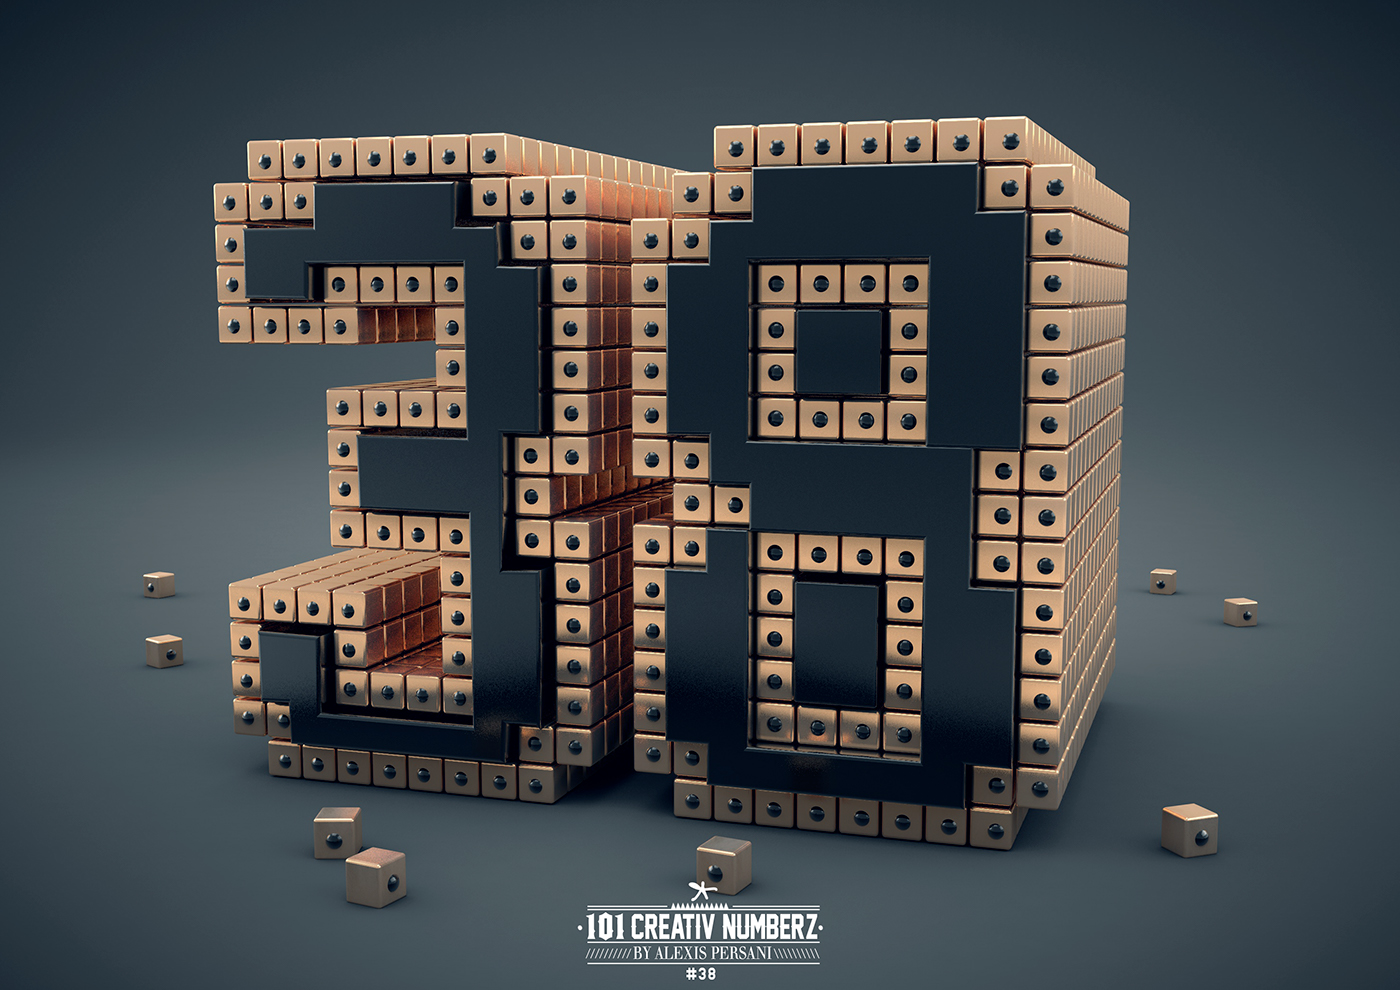 Outstanding 101 Creative Numbers Typography by Alexis Persani 35